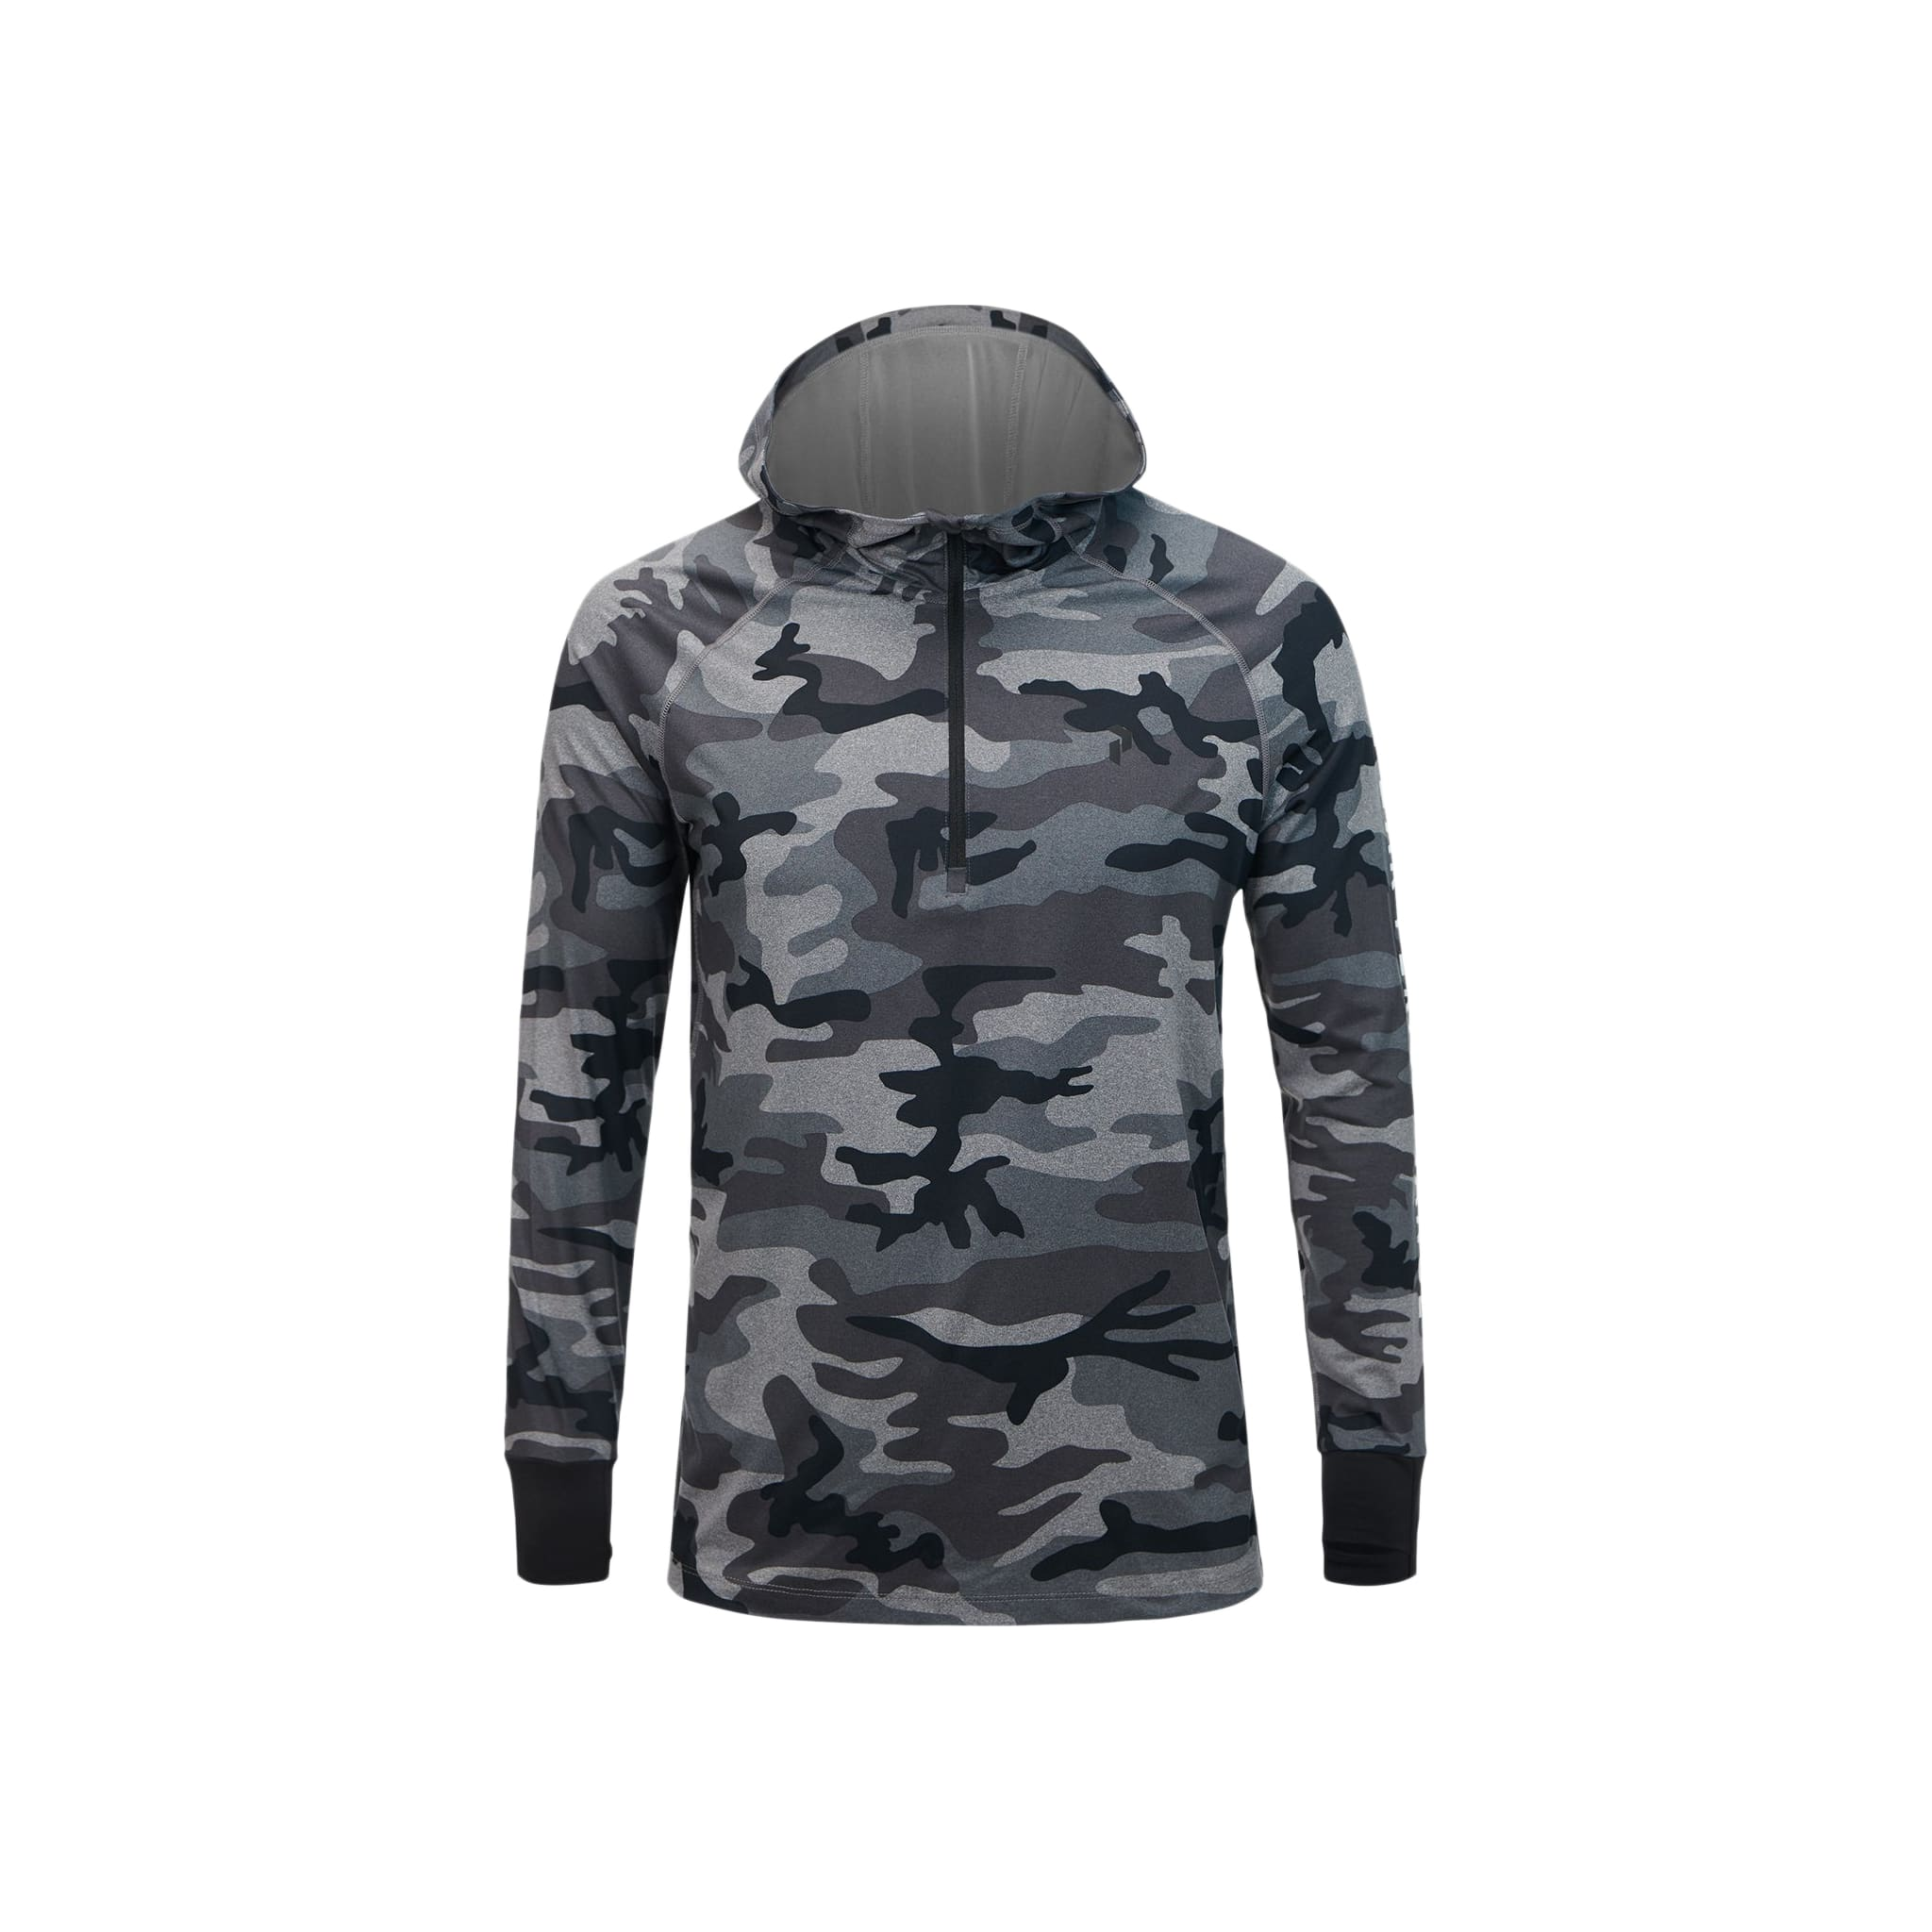 Spirit Printed Hooded Melange Jacket